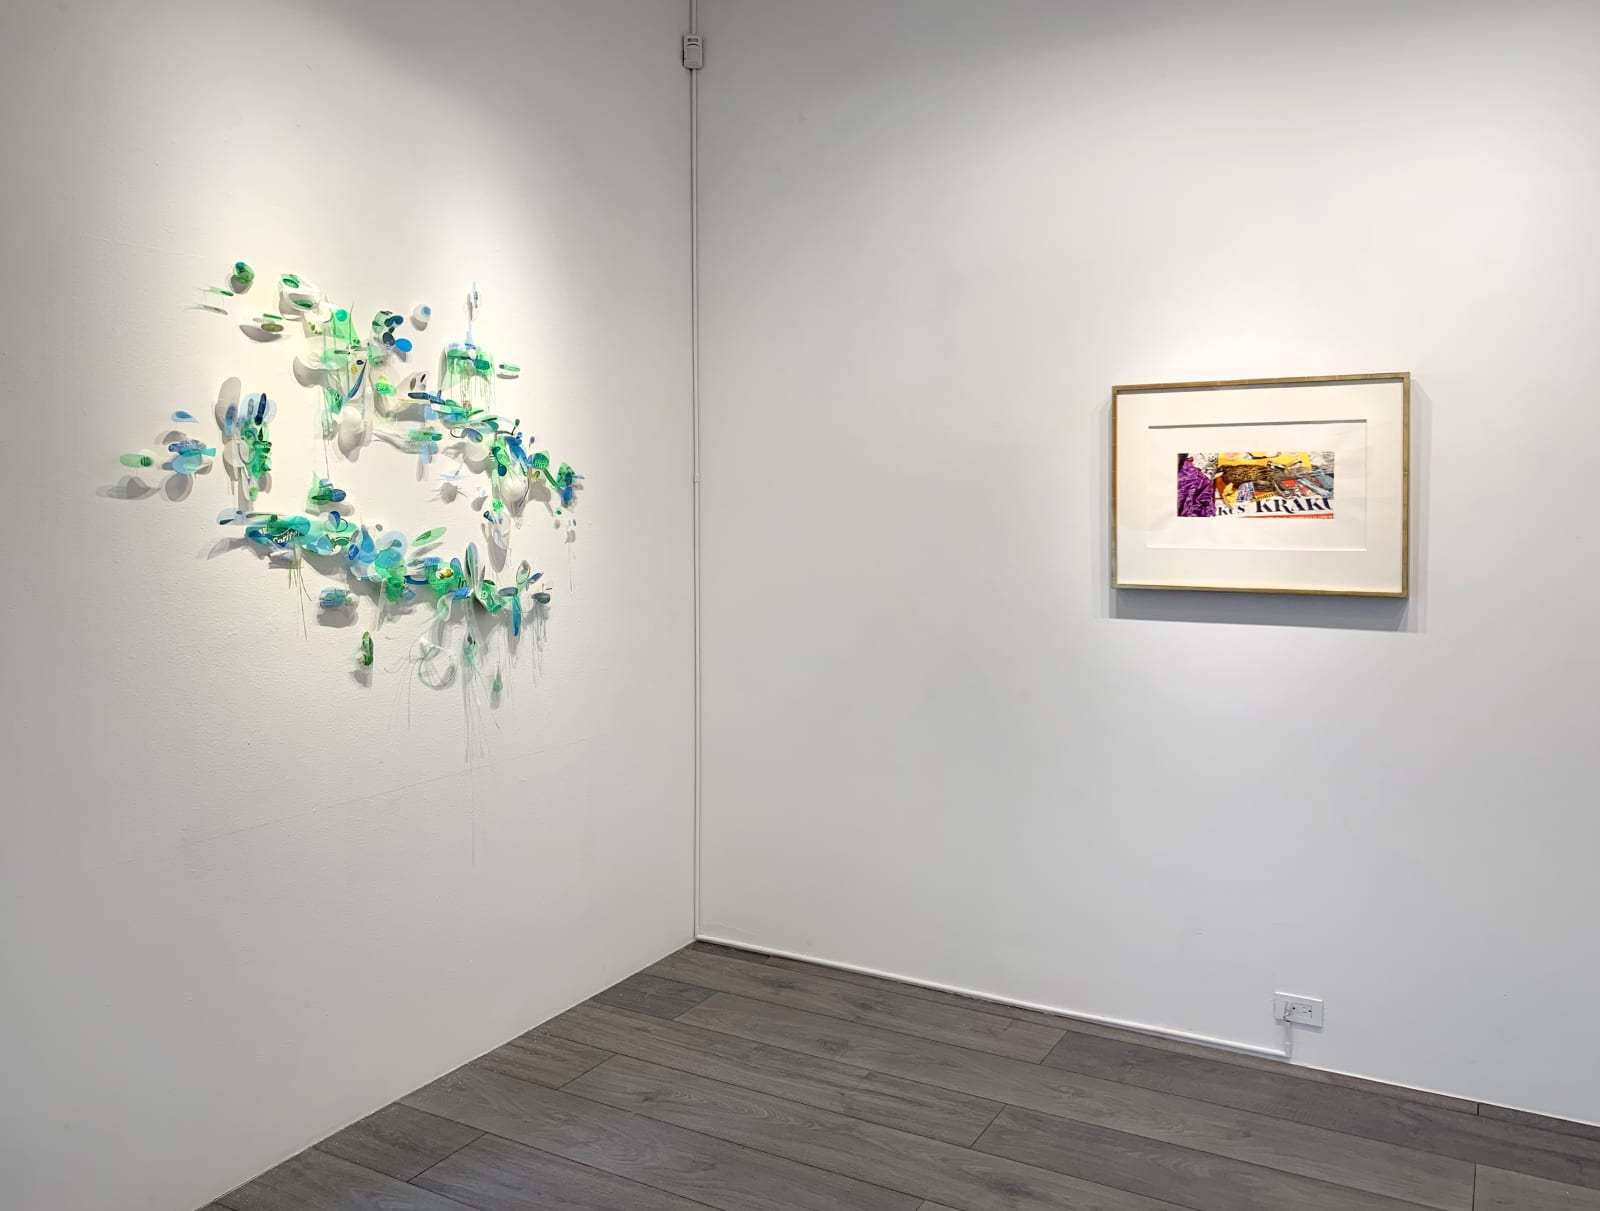 Installation view: Remnant Romance, Environmental Works: Idelle Weber and Aurora Robson